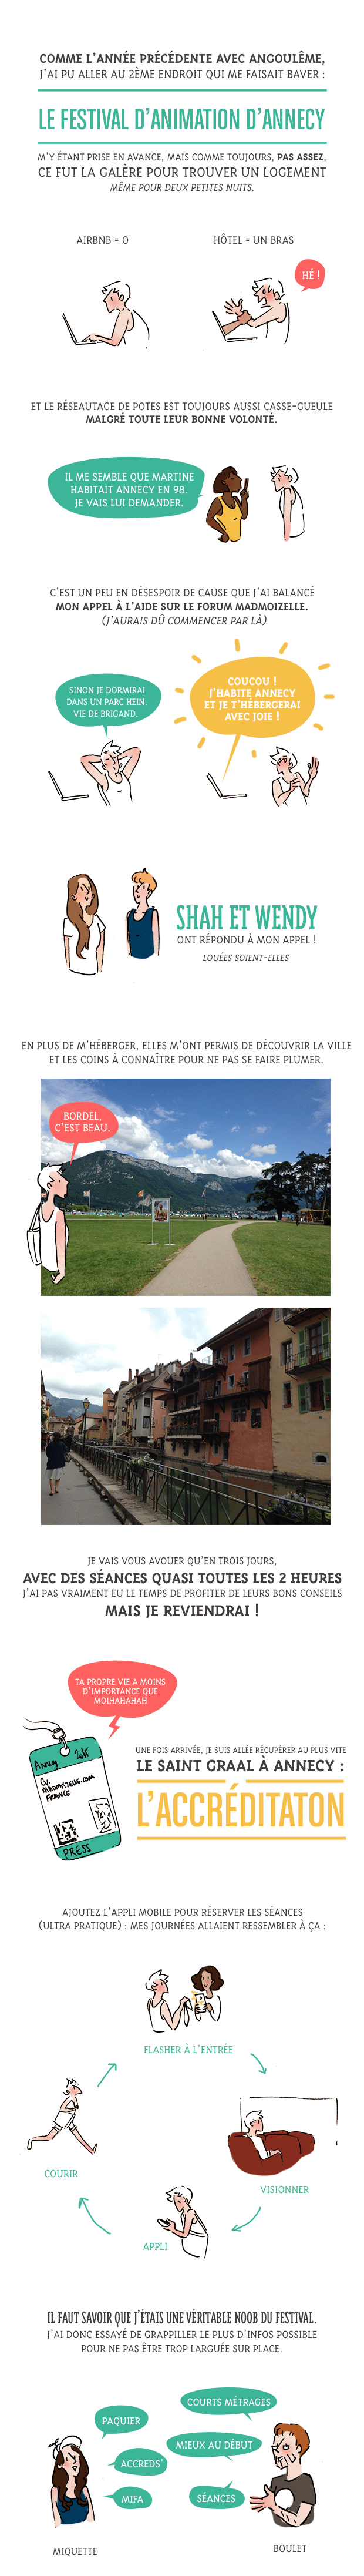 festival-animation-annecy-1